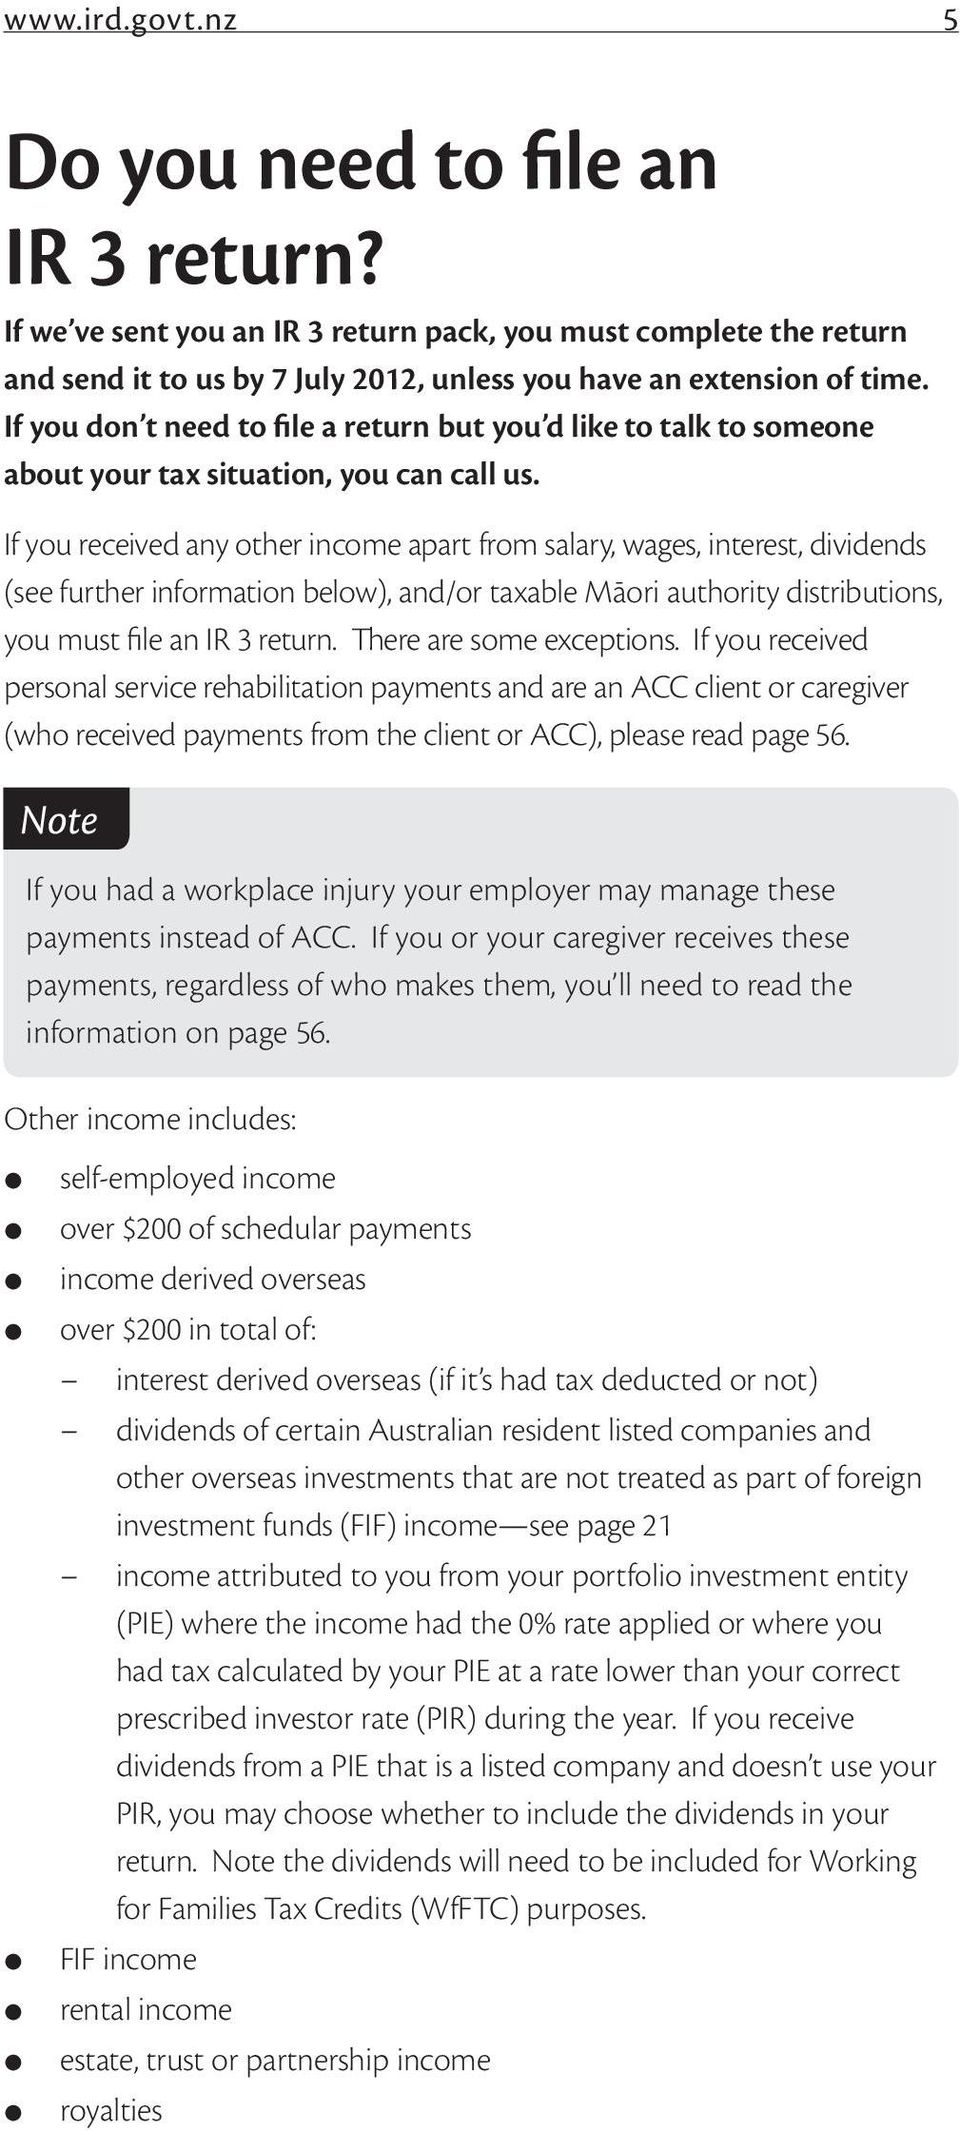 If you received any other income apart from salary, wages, interest, dividends (see further information below), and/or taxable Māori authority distributions, you must file an IR 3 return.